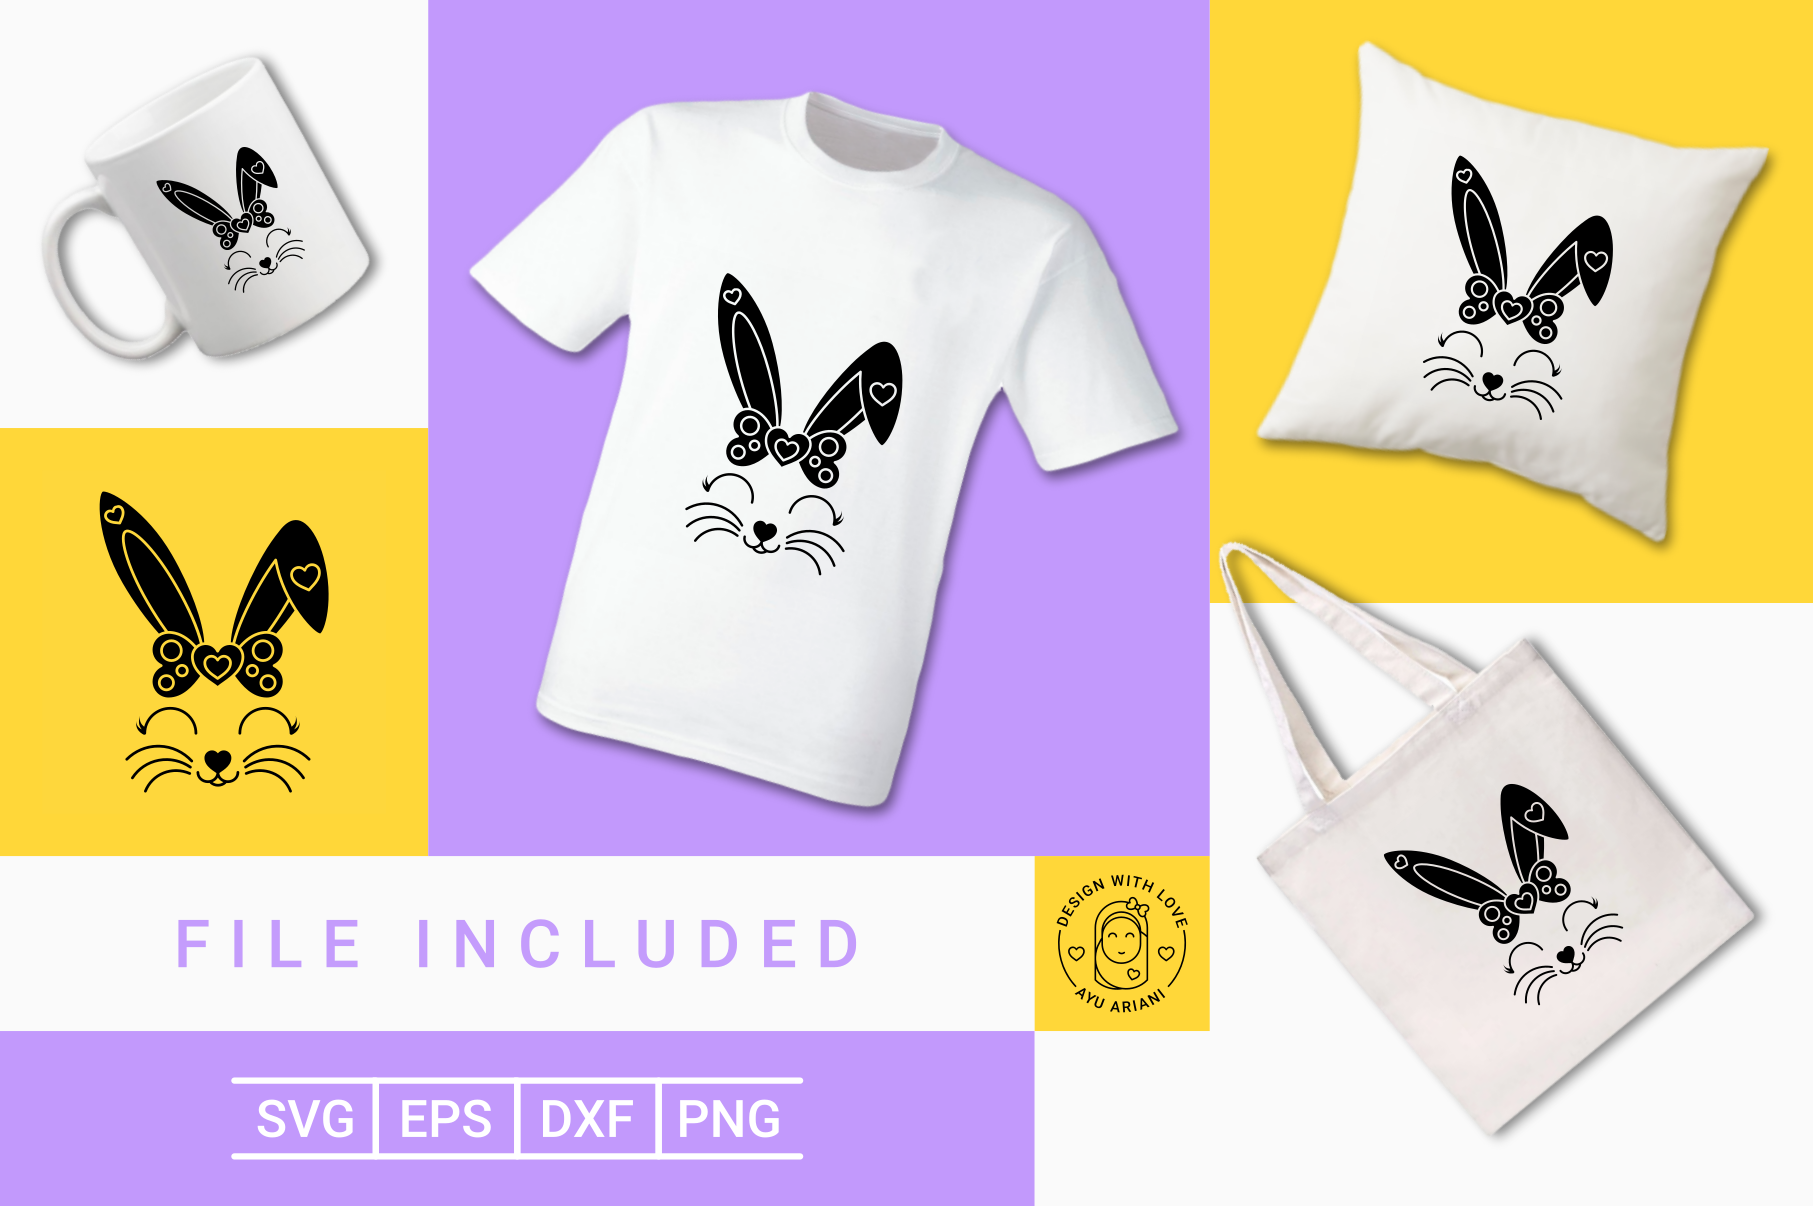 Download Free Cute Bunny Girl Silhouette Graphic By Ayuariani Creative Fabrica for Cricut Explore, Silhouette and other cutting machines.